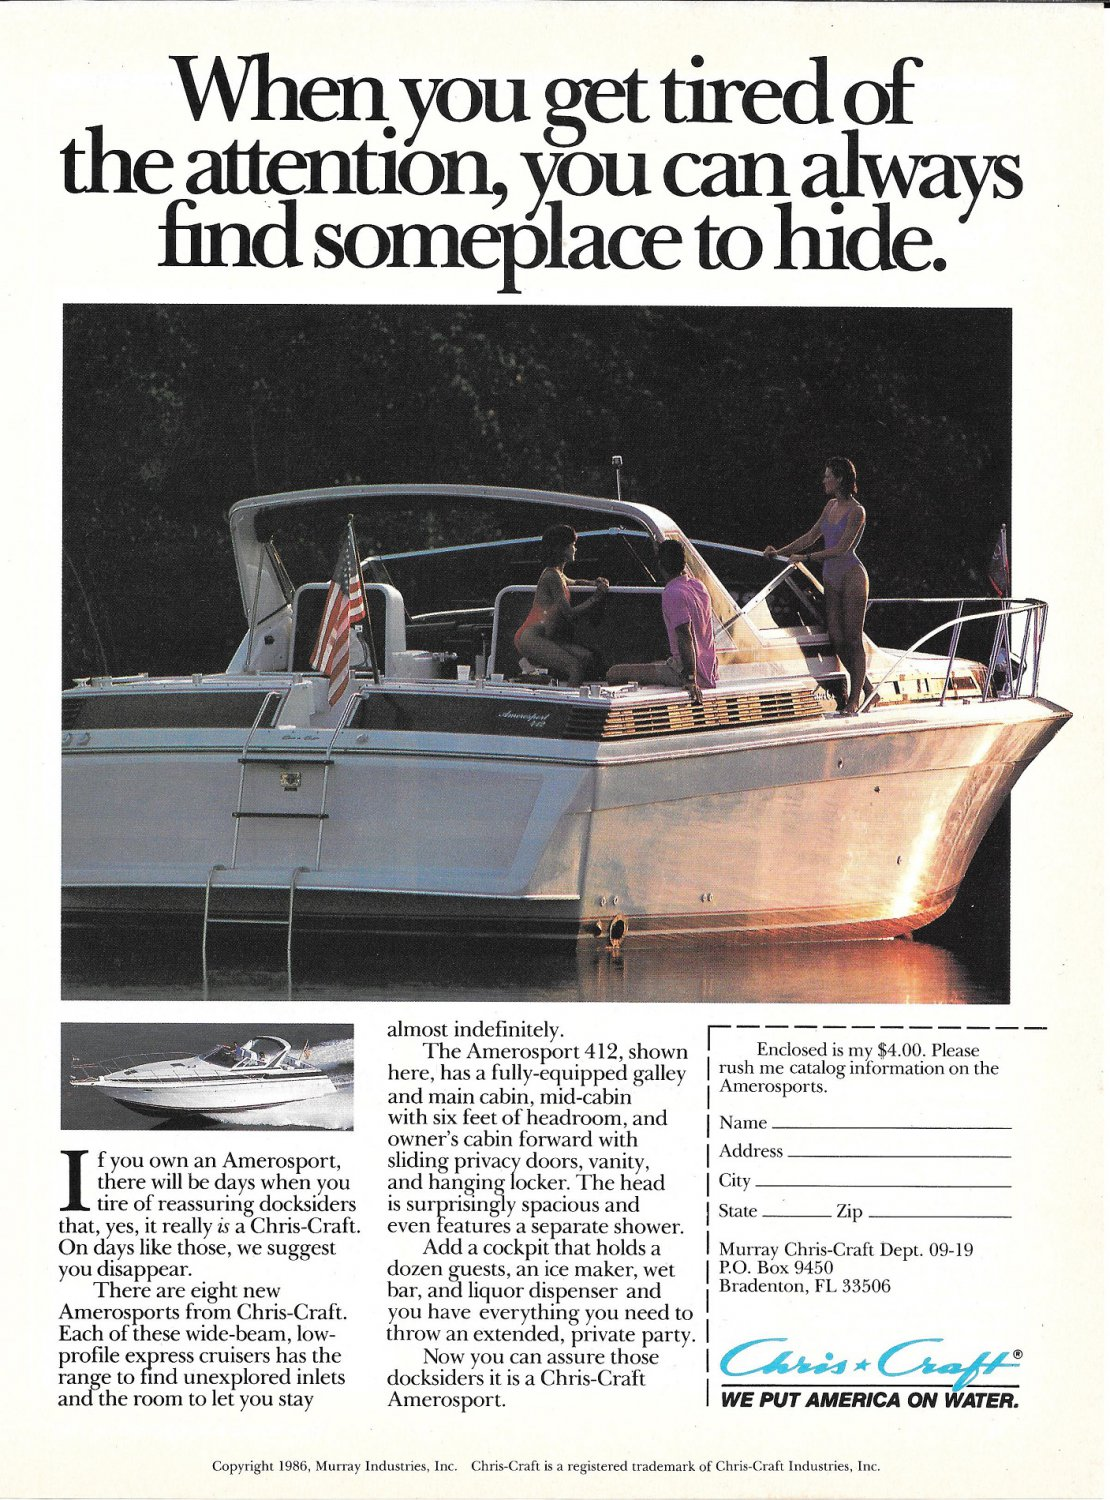 1986 Chris- Craft Yacht Color Ad- The Amerosport